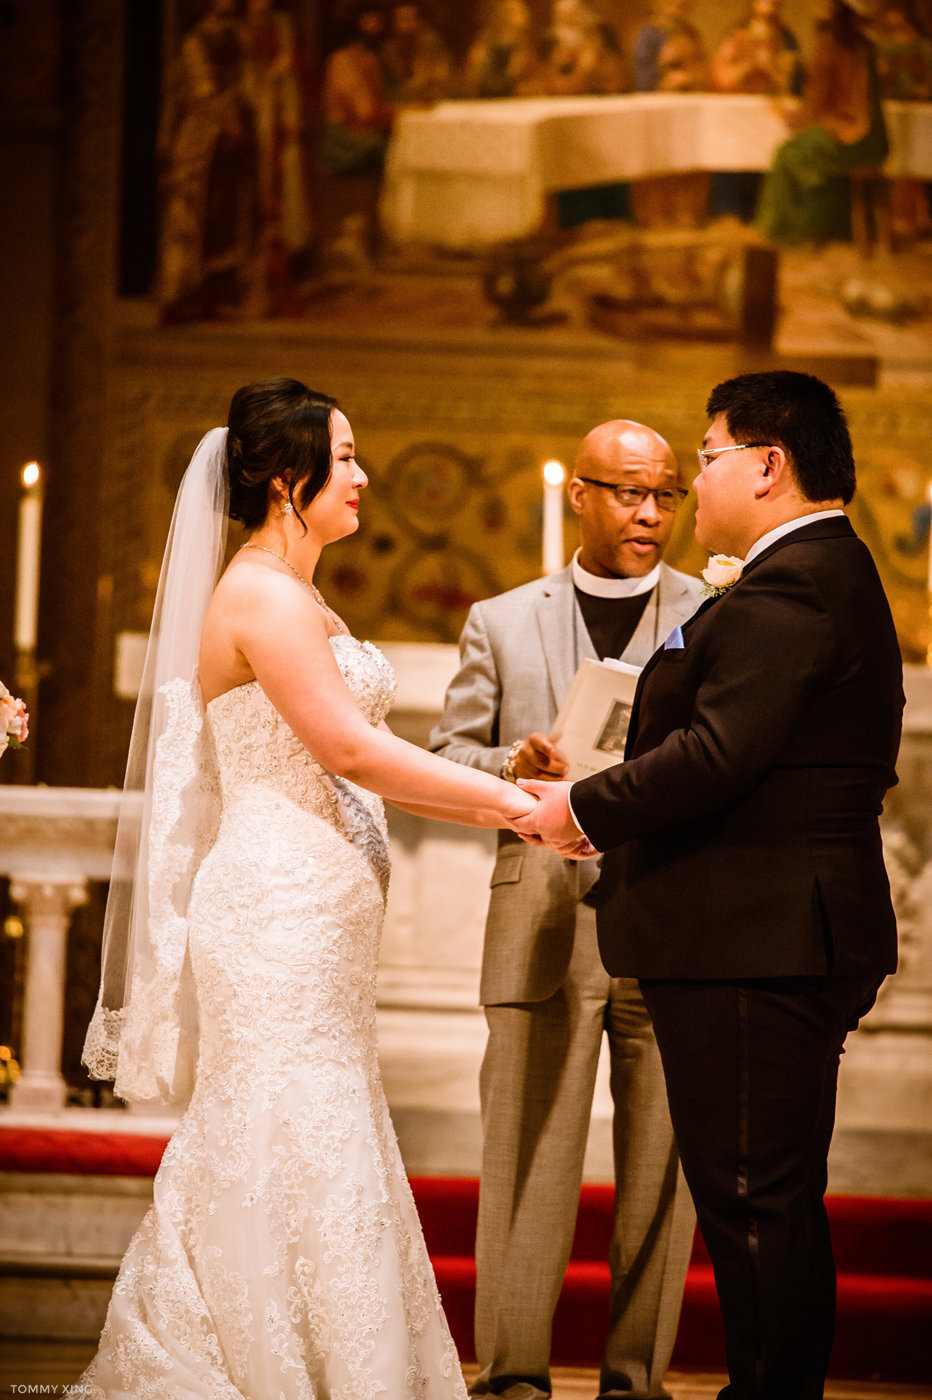 STANFORD MEMORIAL CHURCH WEDDING - Wenjie & Chengcheng - SAN FRANCISCO BAY AREA 斯坦福教堂婚礼跟拍 - 洛杉矶婚礼婚纱照摄影师 Tommy Xing Photography099.jpg